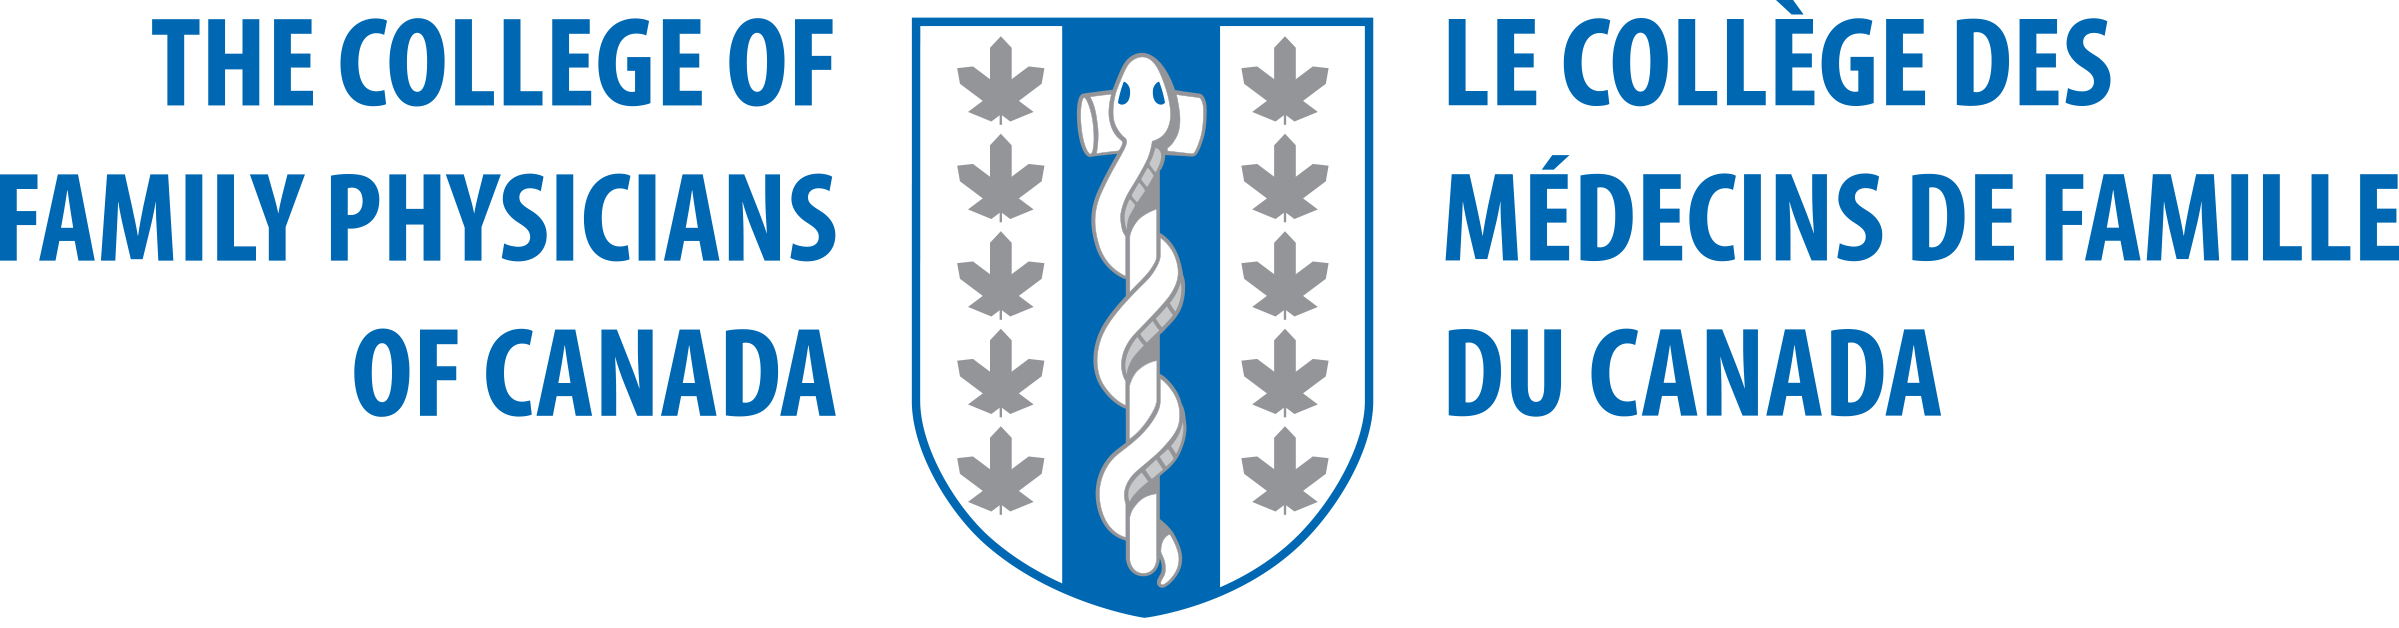 College of Family Physicians of Canada company